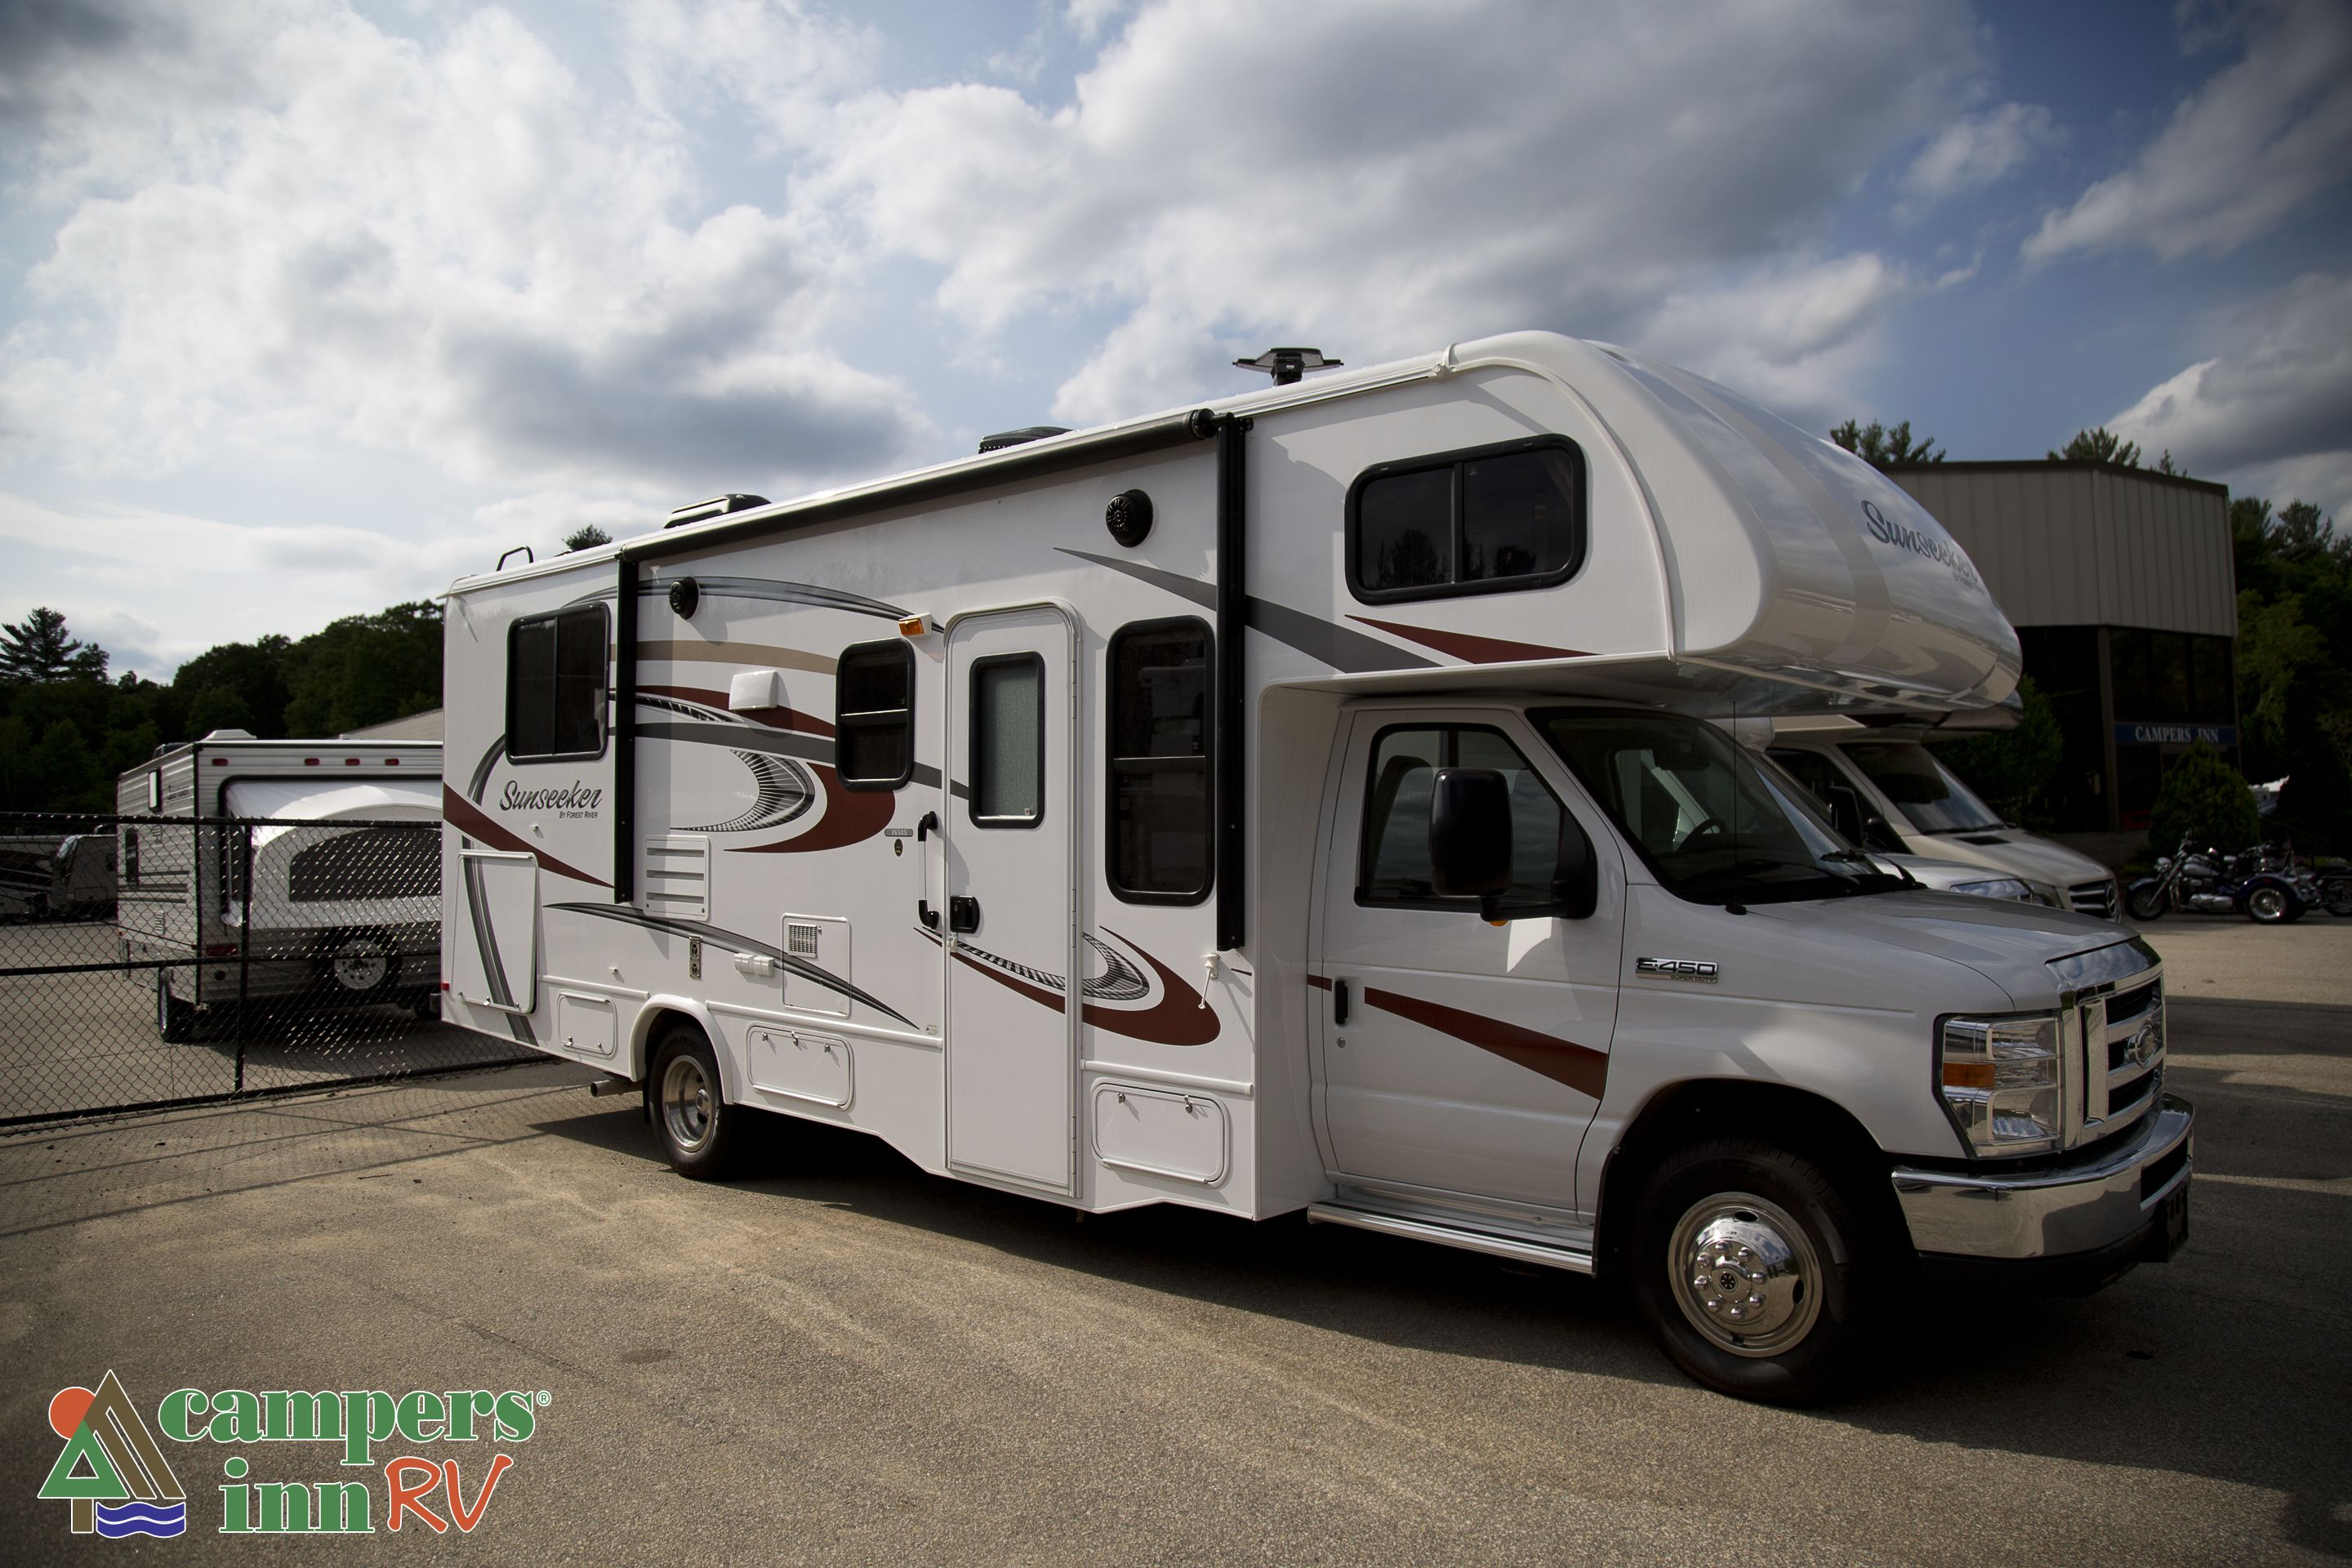 The New 2016 Forest River Sunseeker 2500ts Ford Class C Motorhome